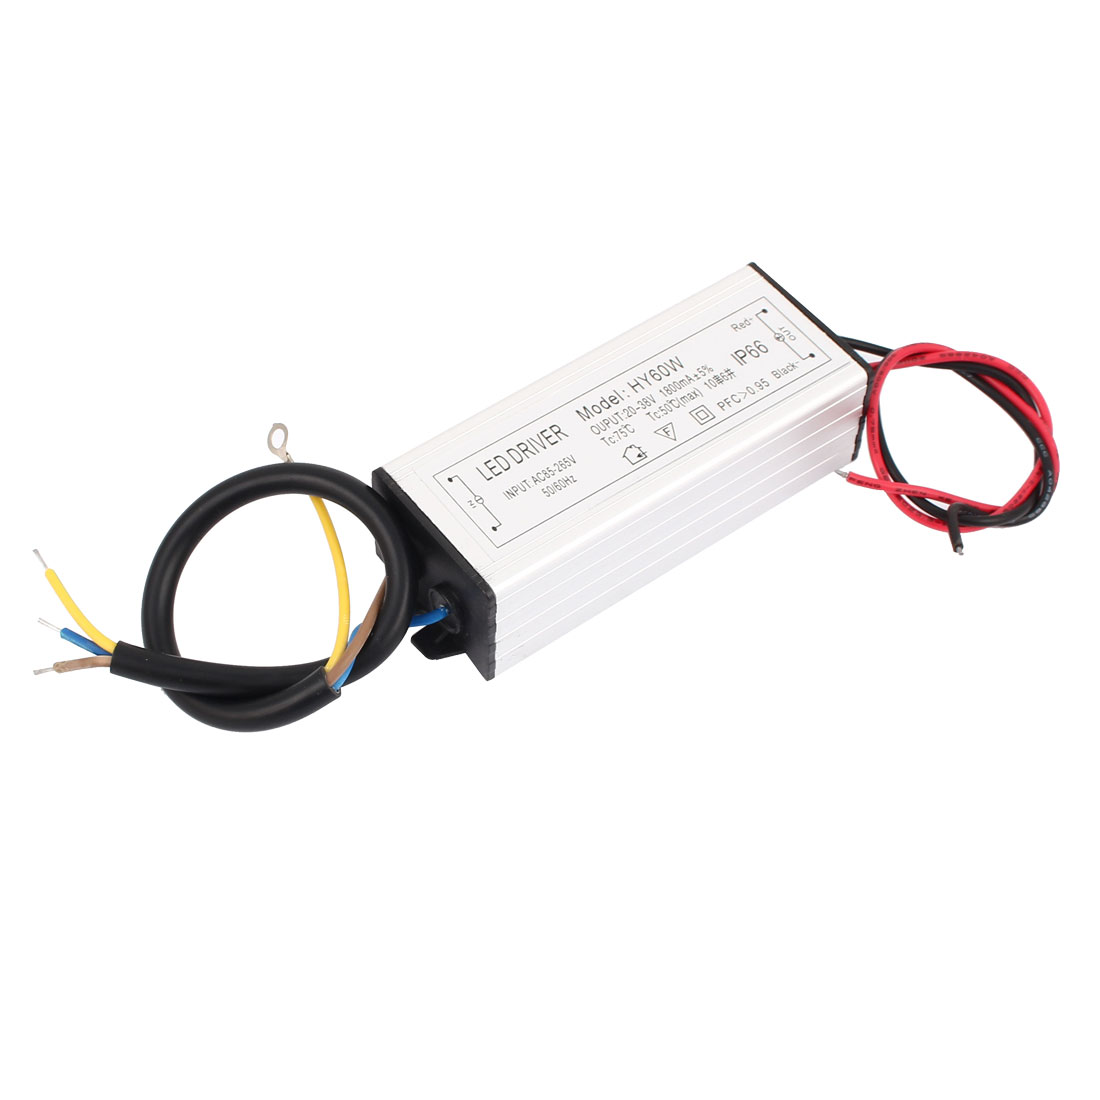 AC85-265V to DC20-38V 60W Transformer IP66 LED Driver Power Supply